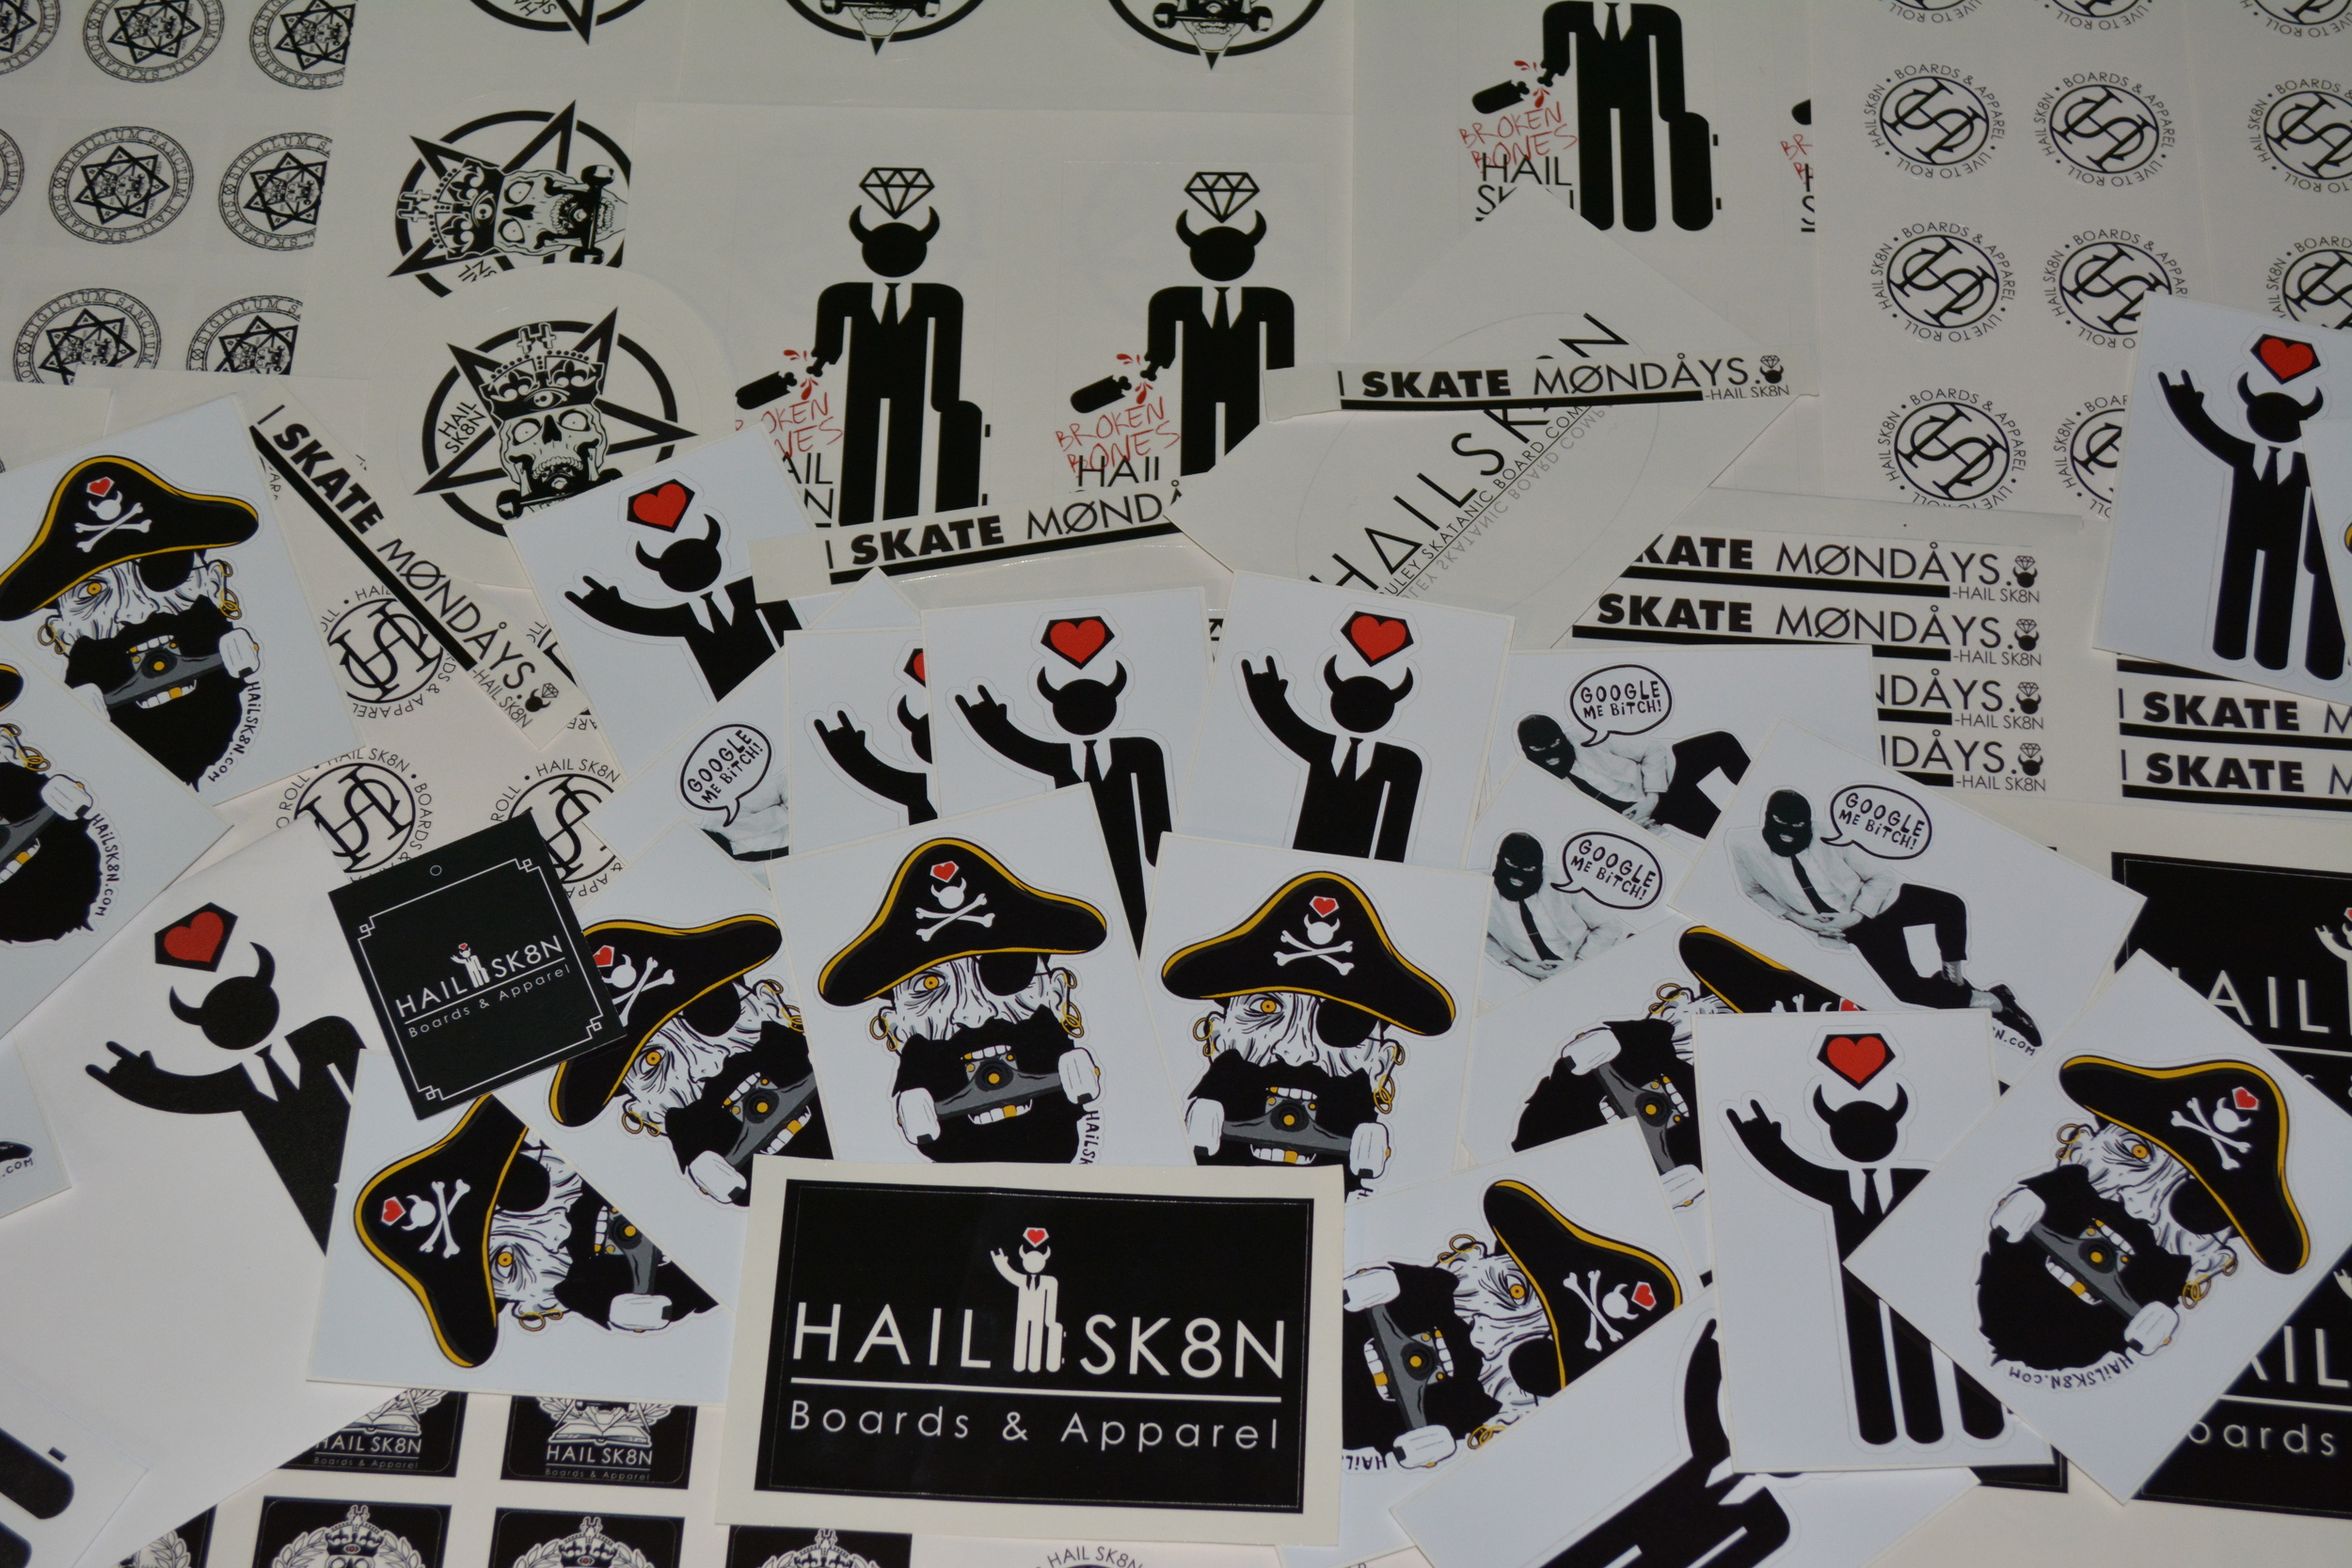 STICKERS 4 DAYS! Follow us on Instagram for contests and free stuff! @IHAILSK8N